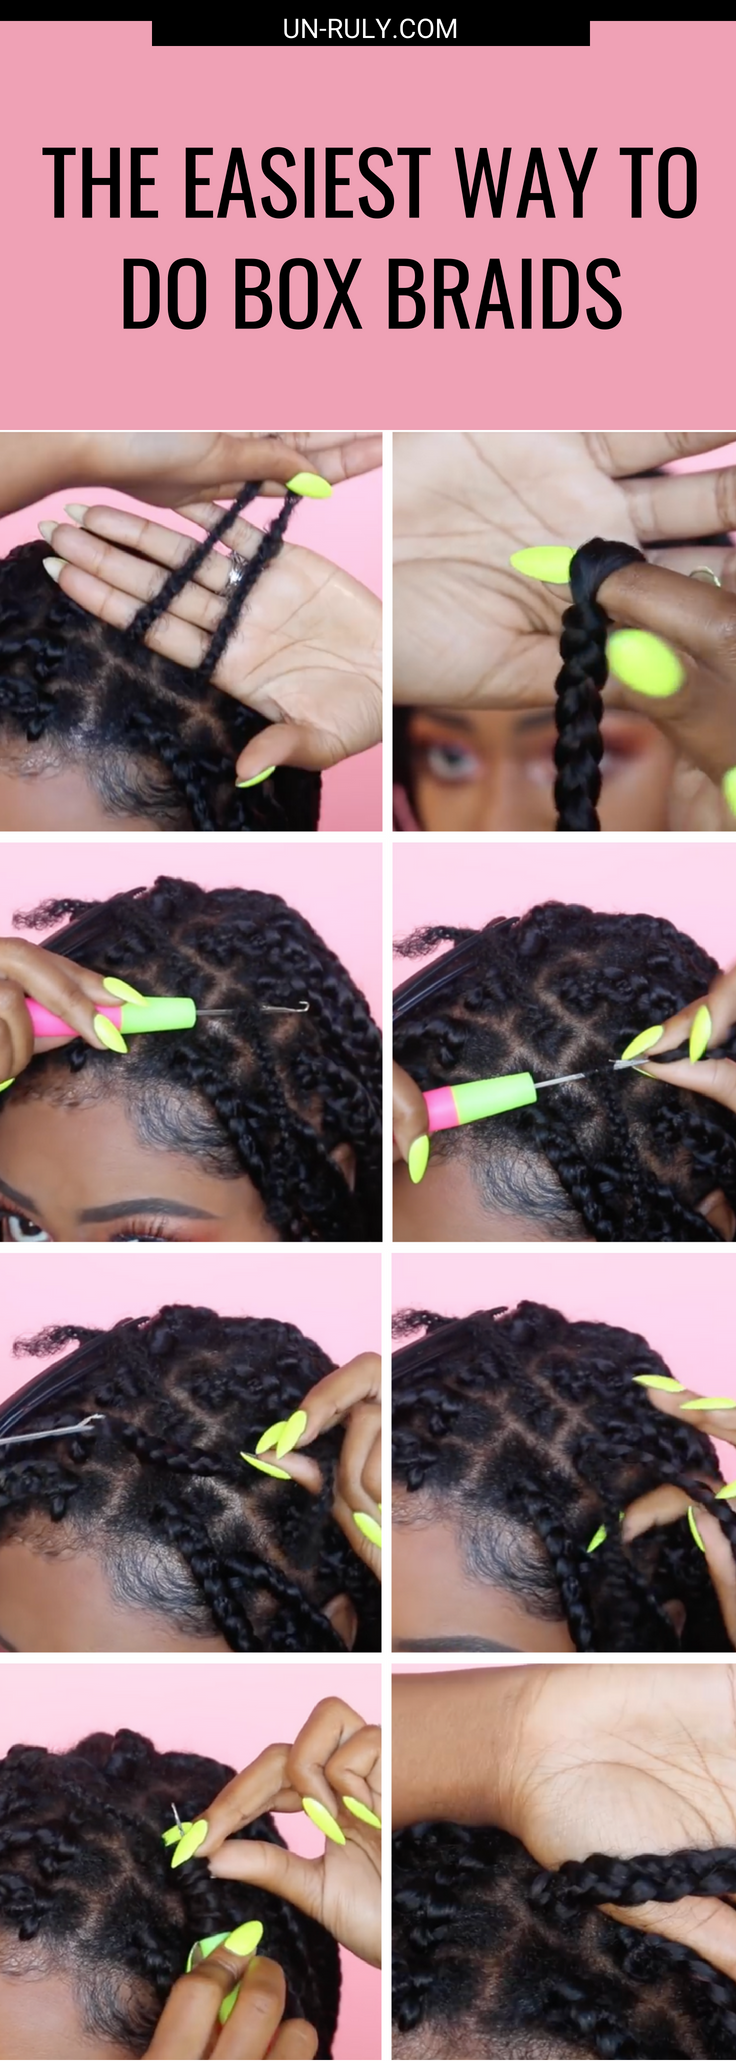 No Cornrow Crochets: Do Your Box Braids This Way | Un-ruly